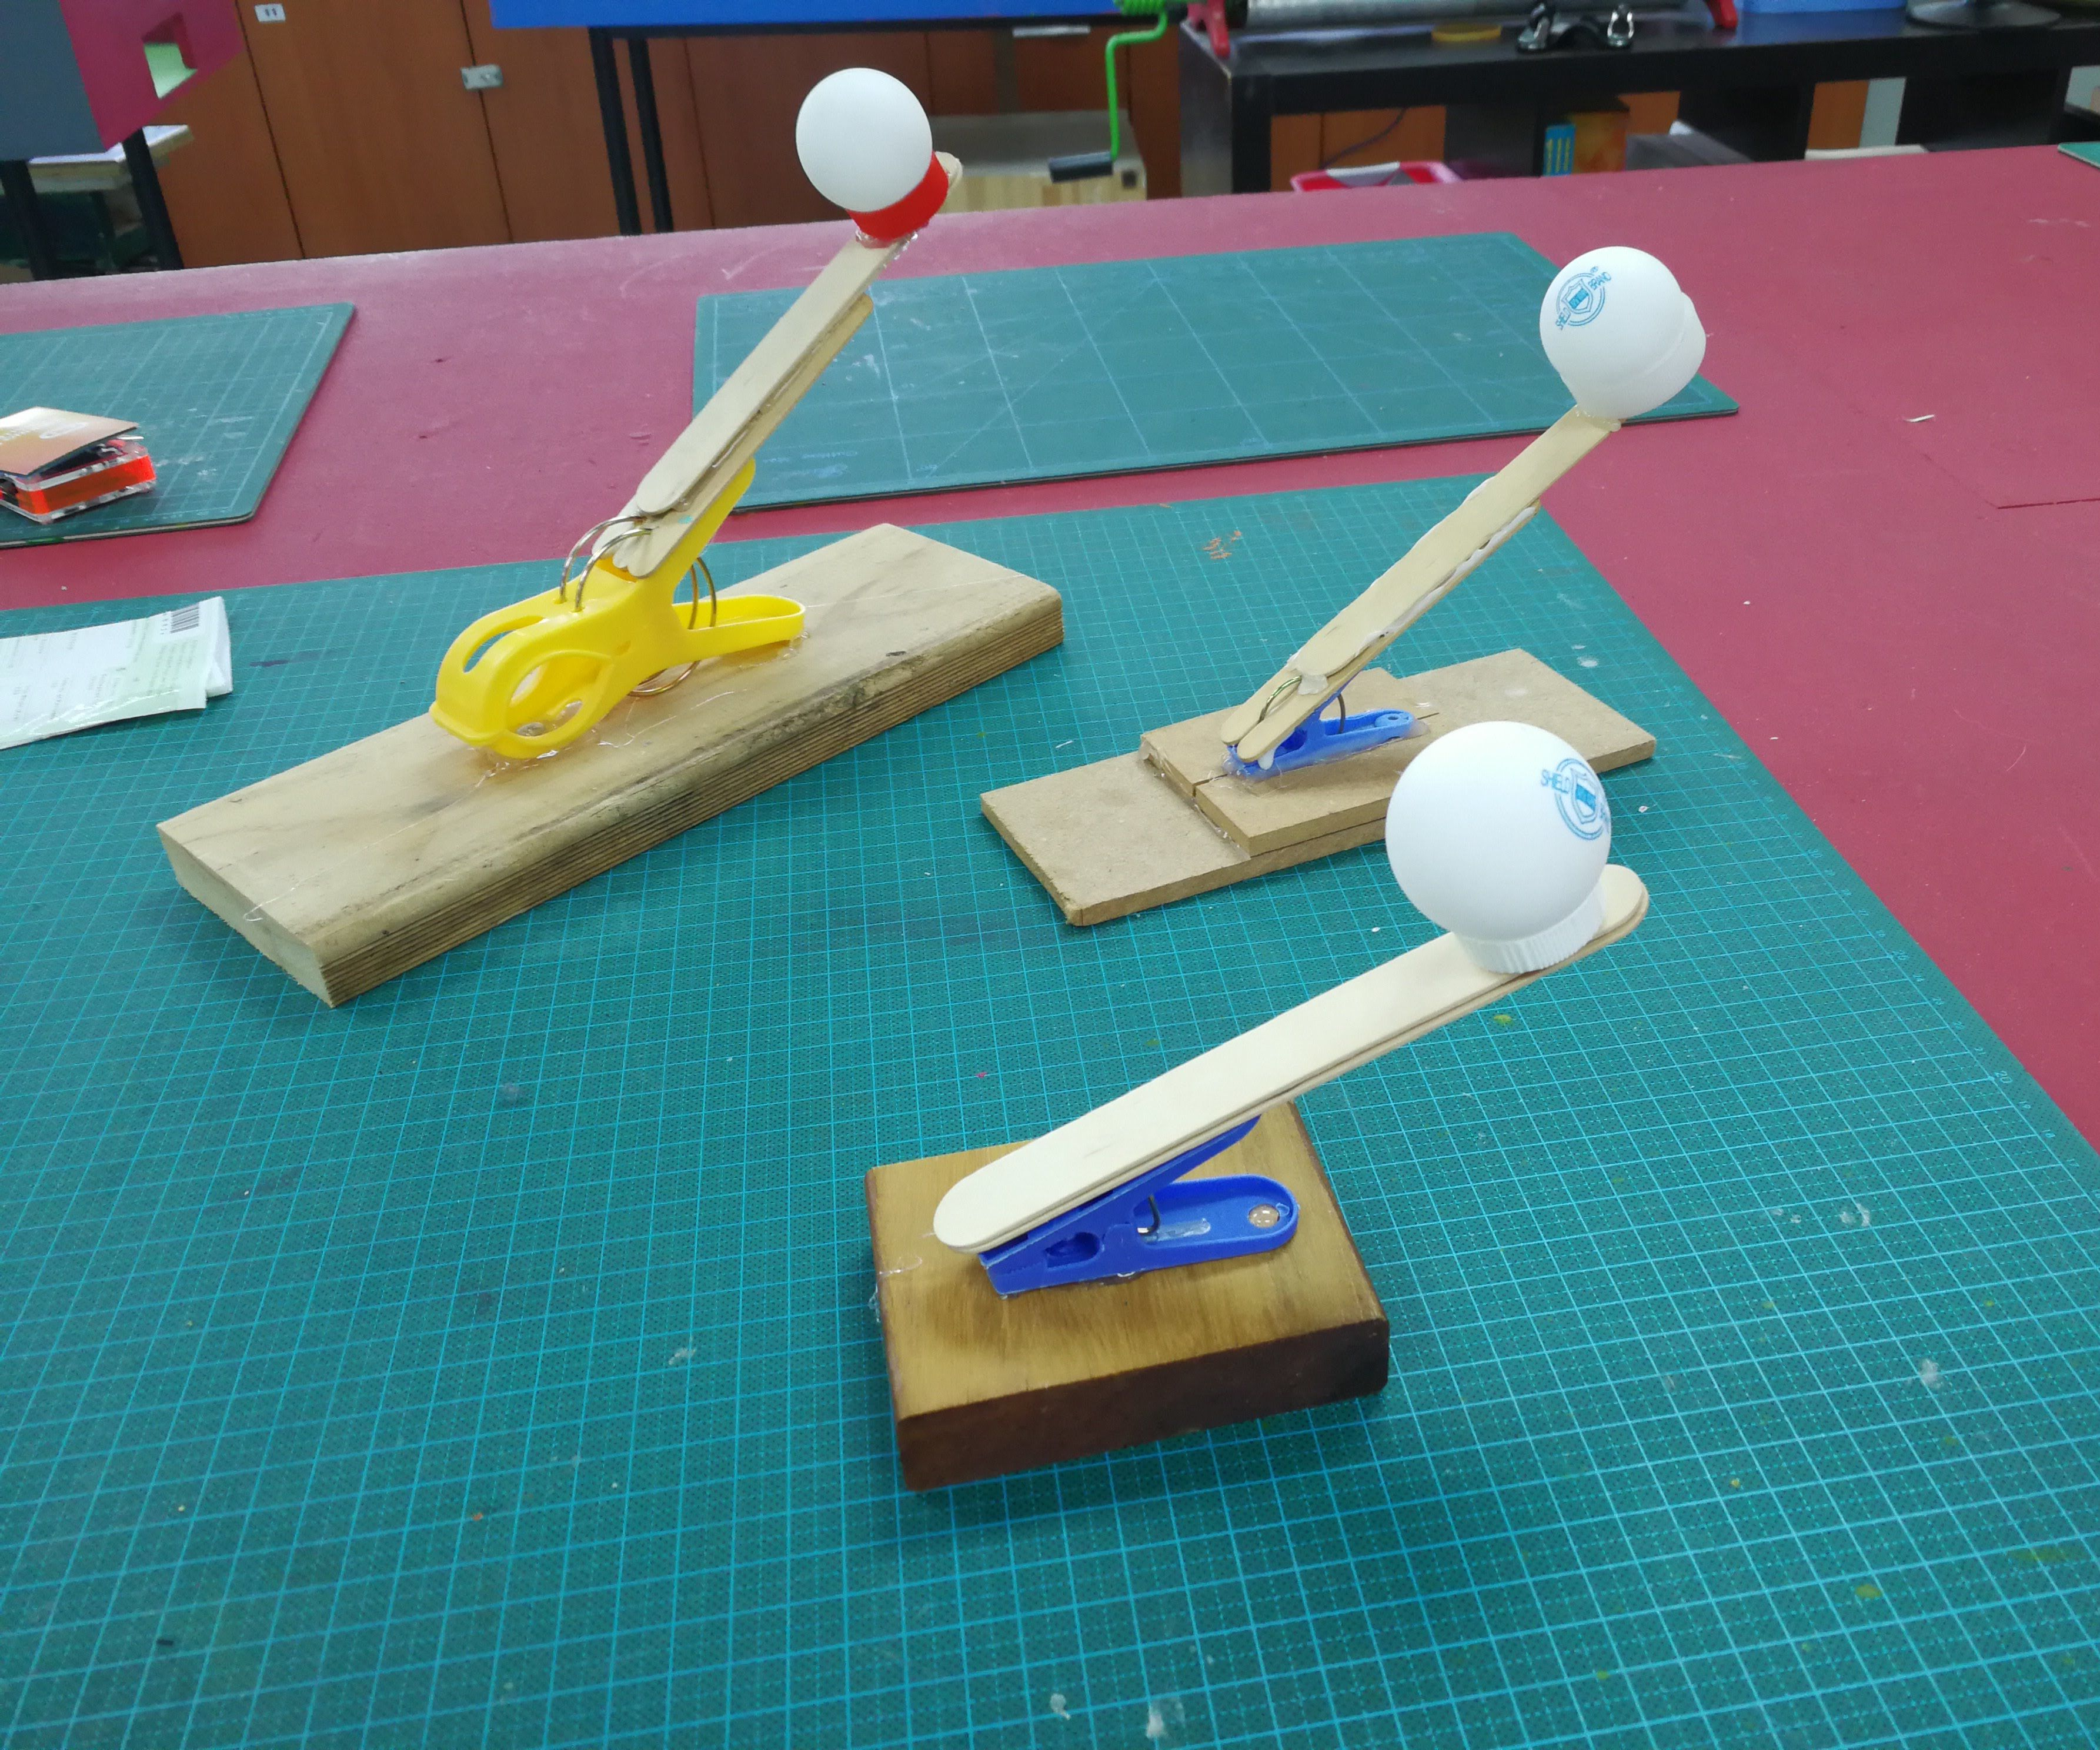 Simplest Catapult Ever!